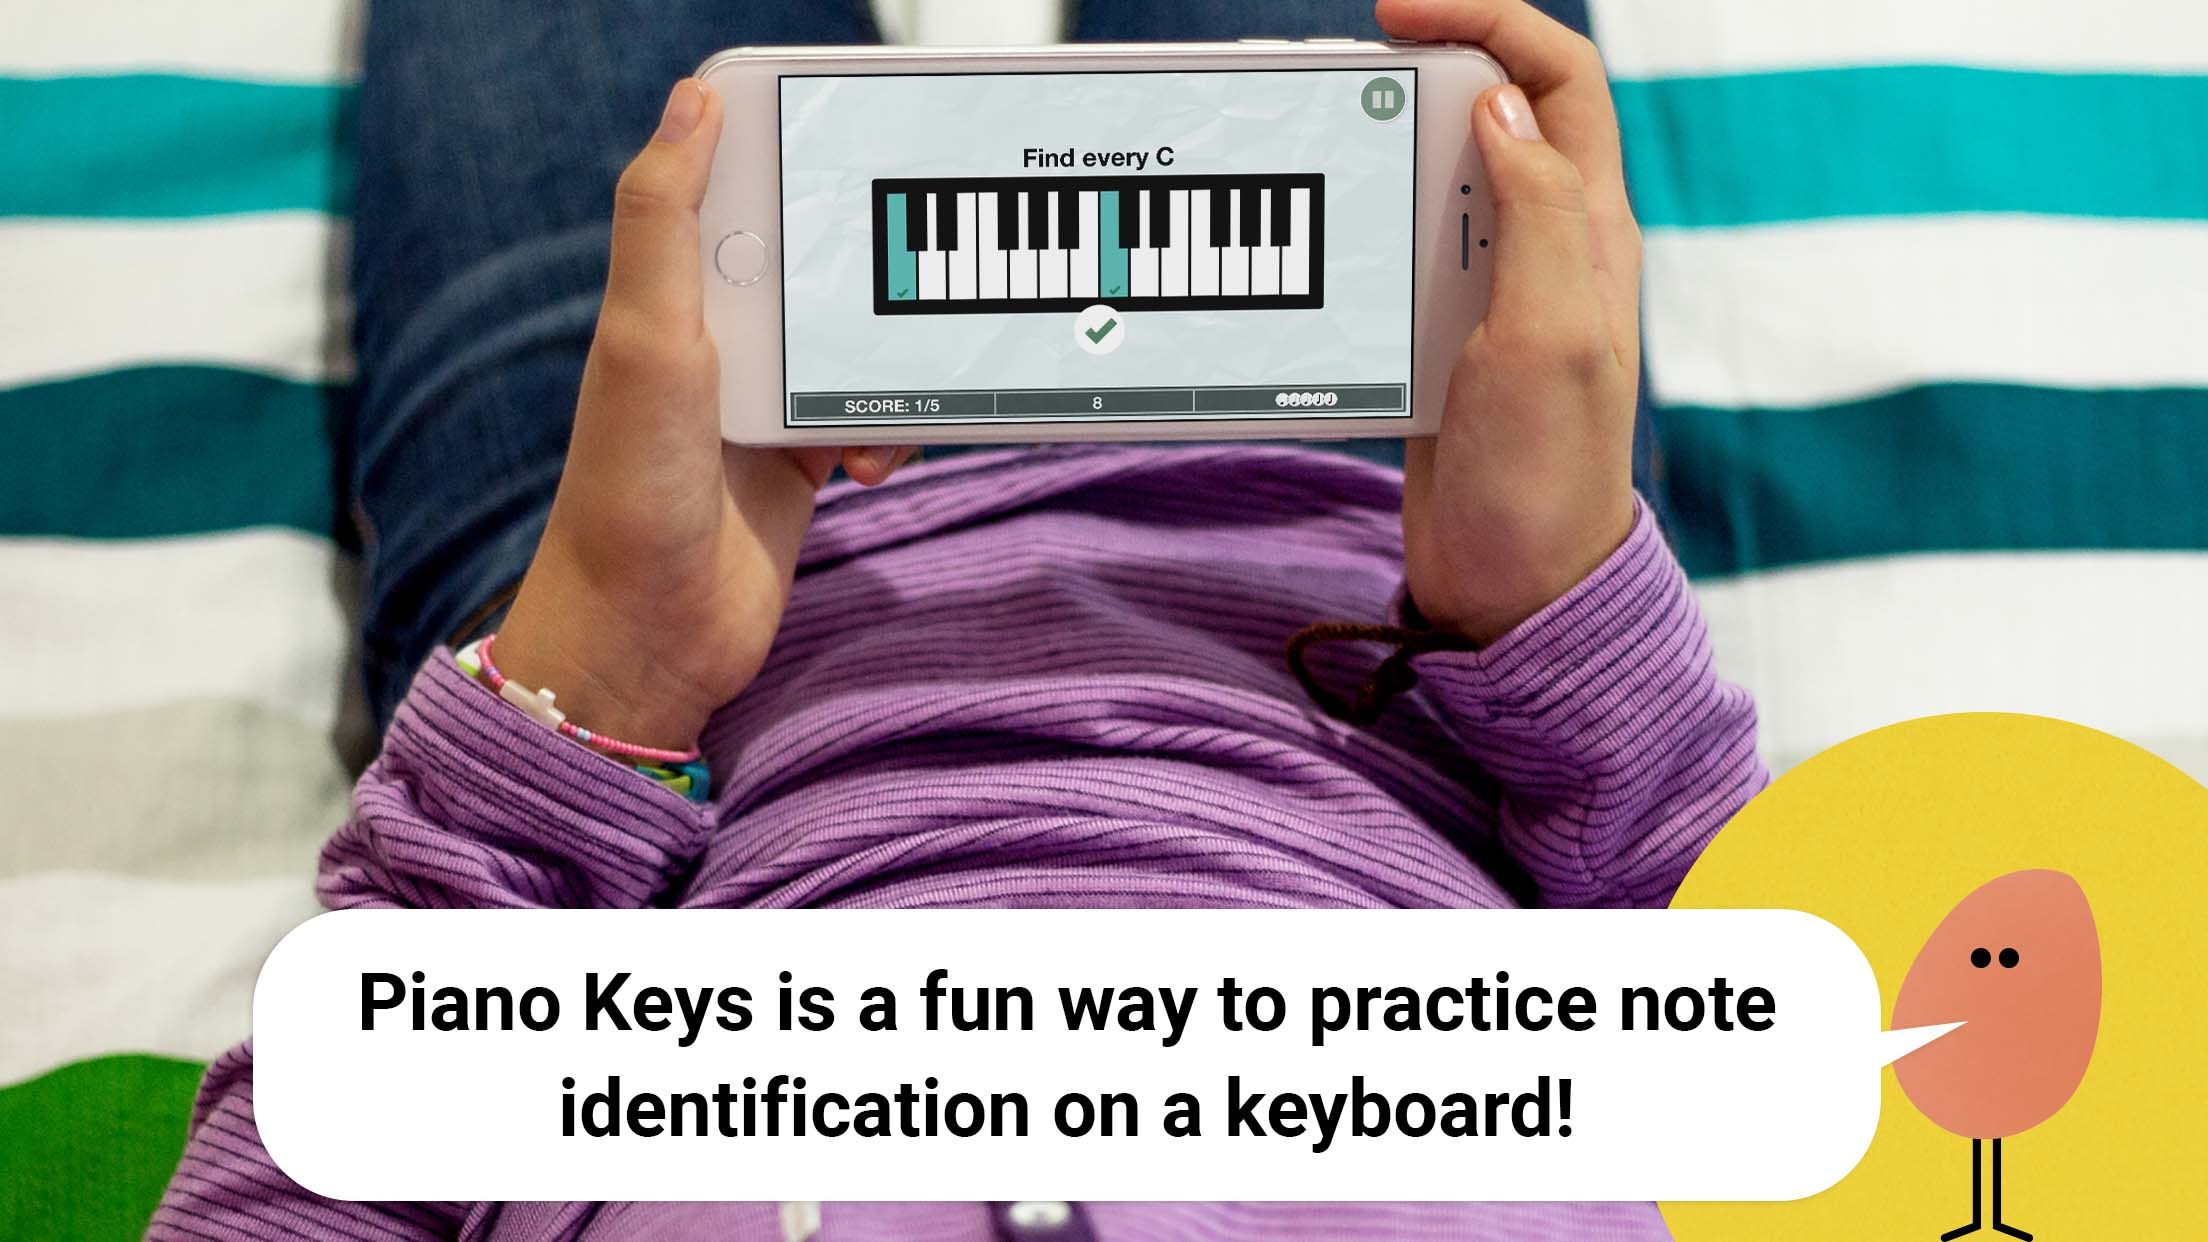 Piano Keys Music Game for iOS - Music Theory | Tonic Tutor Apps